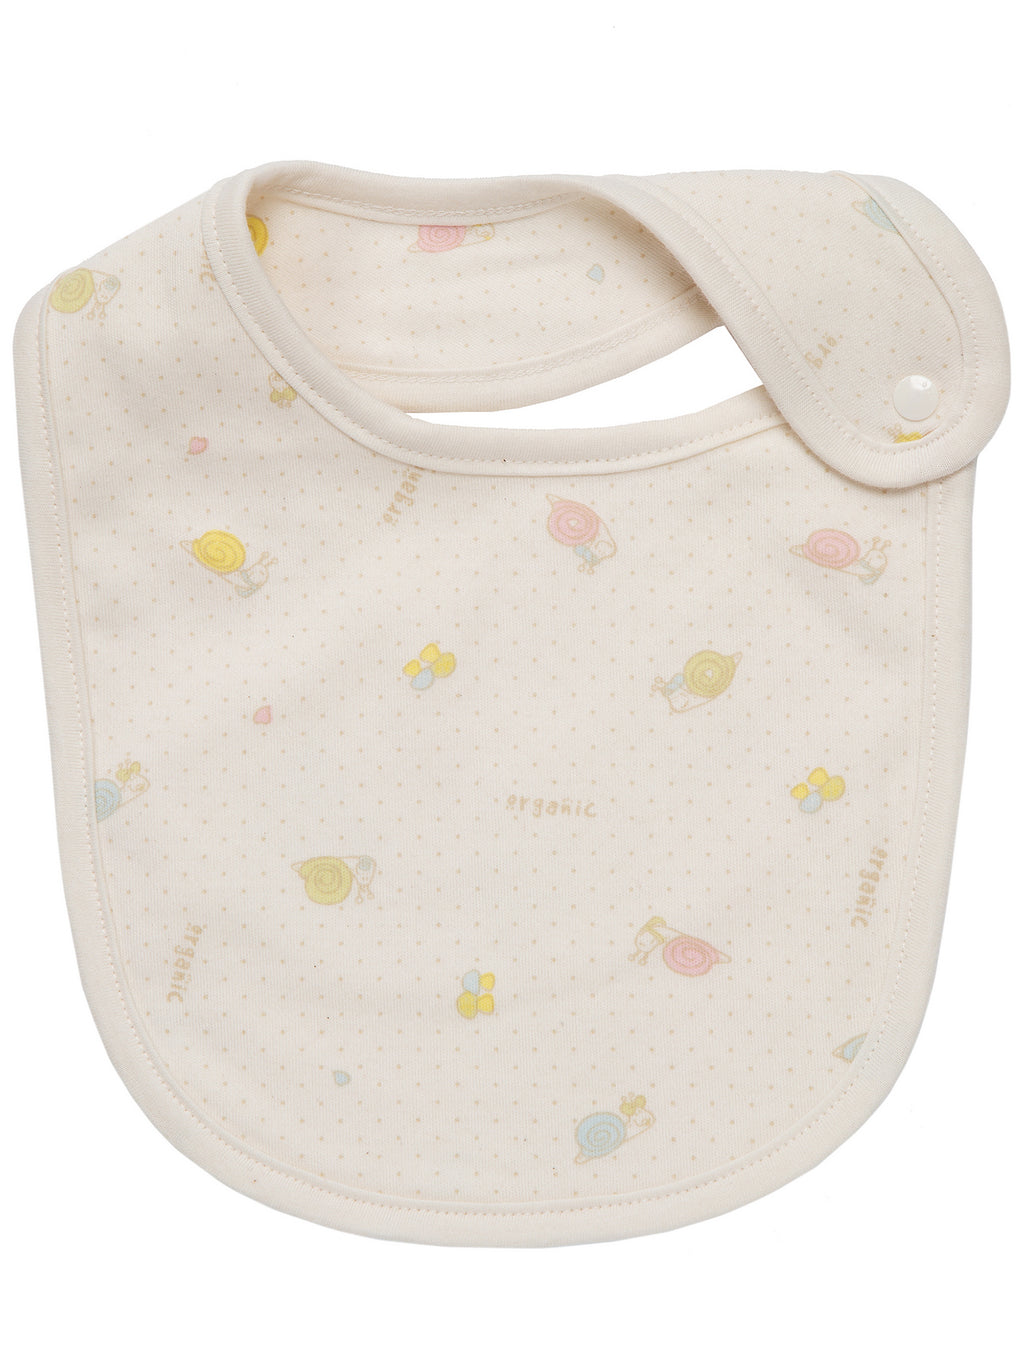 Infant Toddler Absorbent Snap Button Bib - HiOrganic